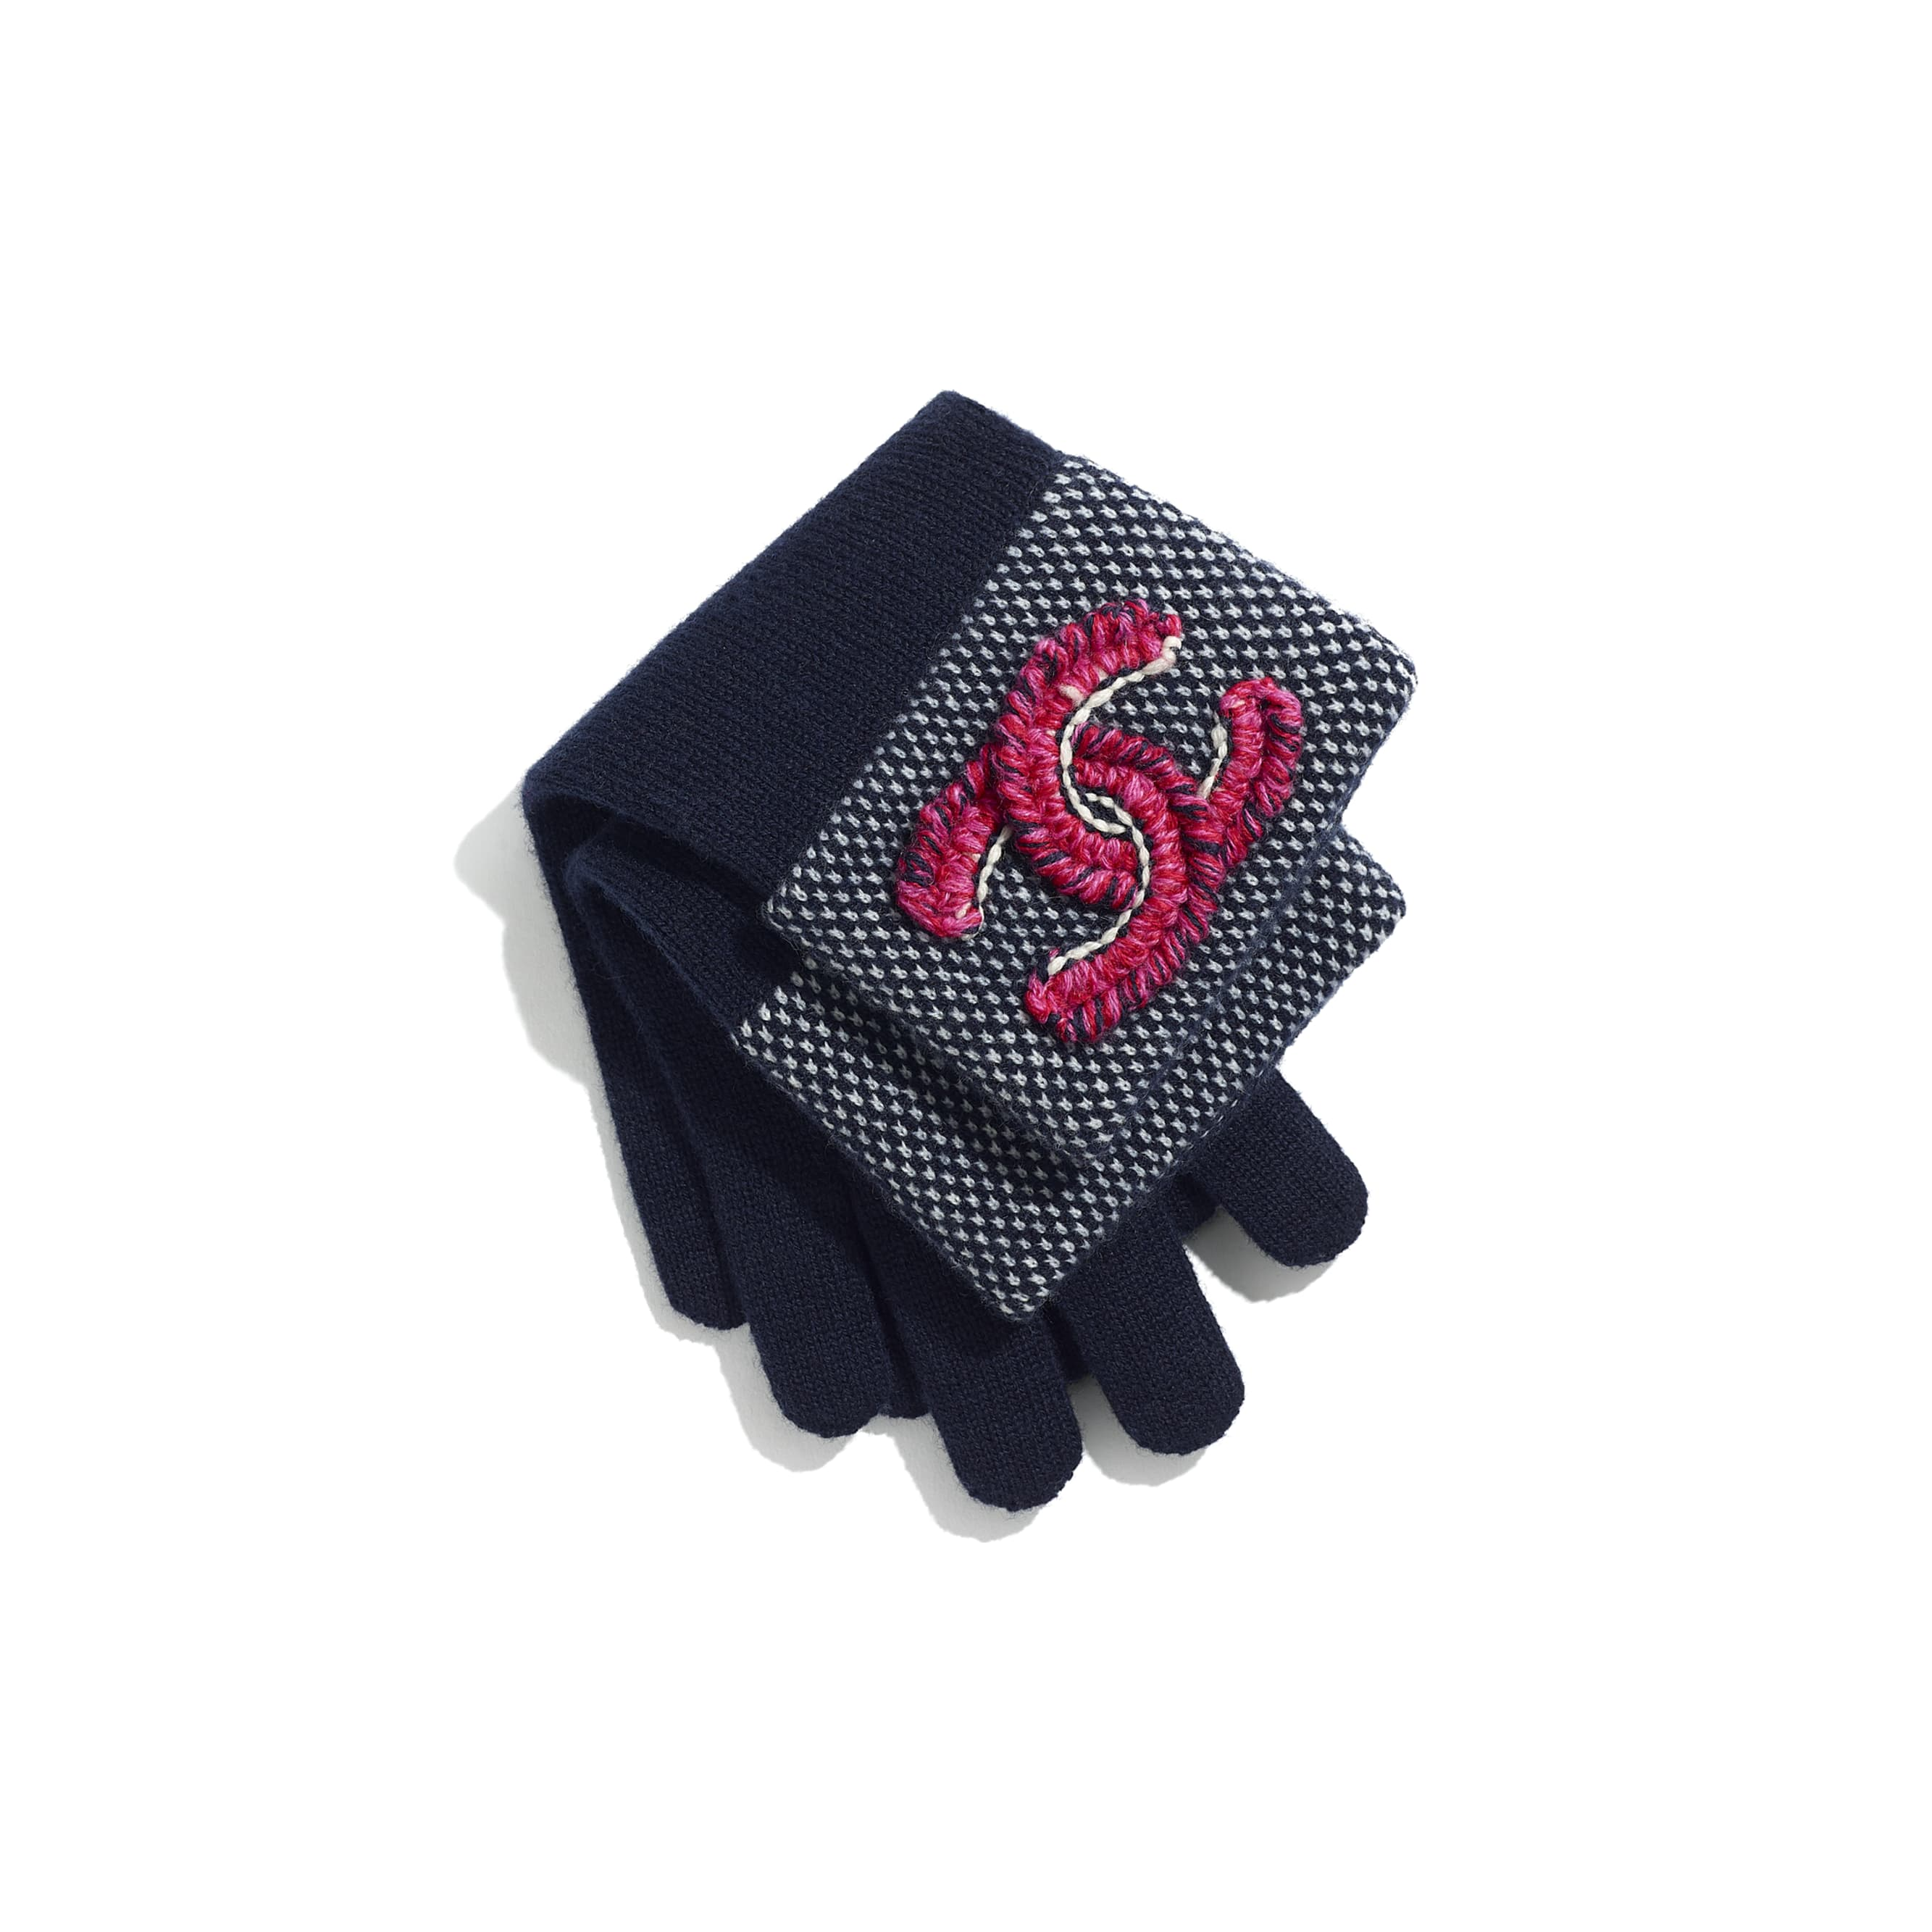 Gloves - Navy Blue & Fuchsia - Cashmere & Wool - CHANEL - Alternative view - see standard sized version